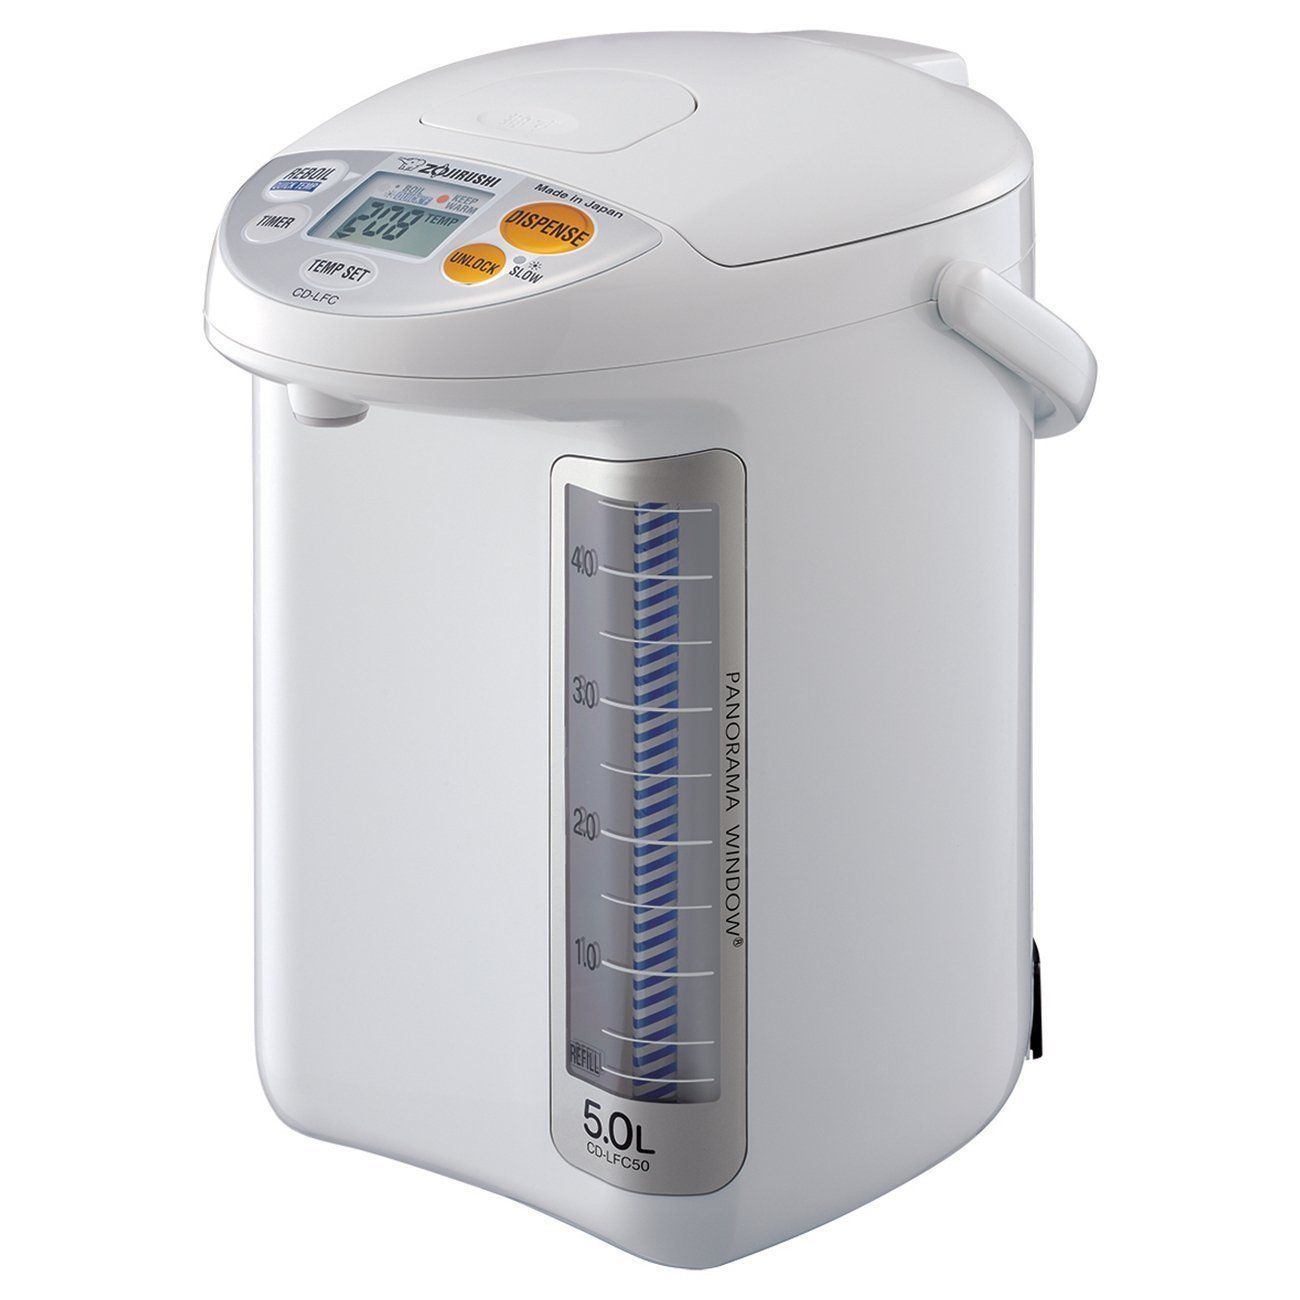 Zojirushi CD-LFC50WA 5L Panorama Window Micom Water Boiler and Warmer